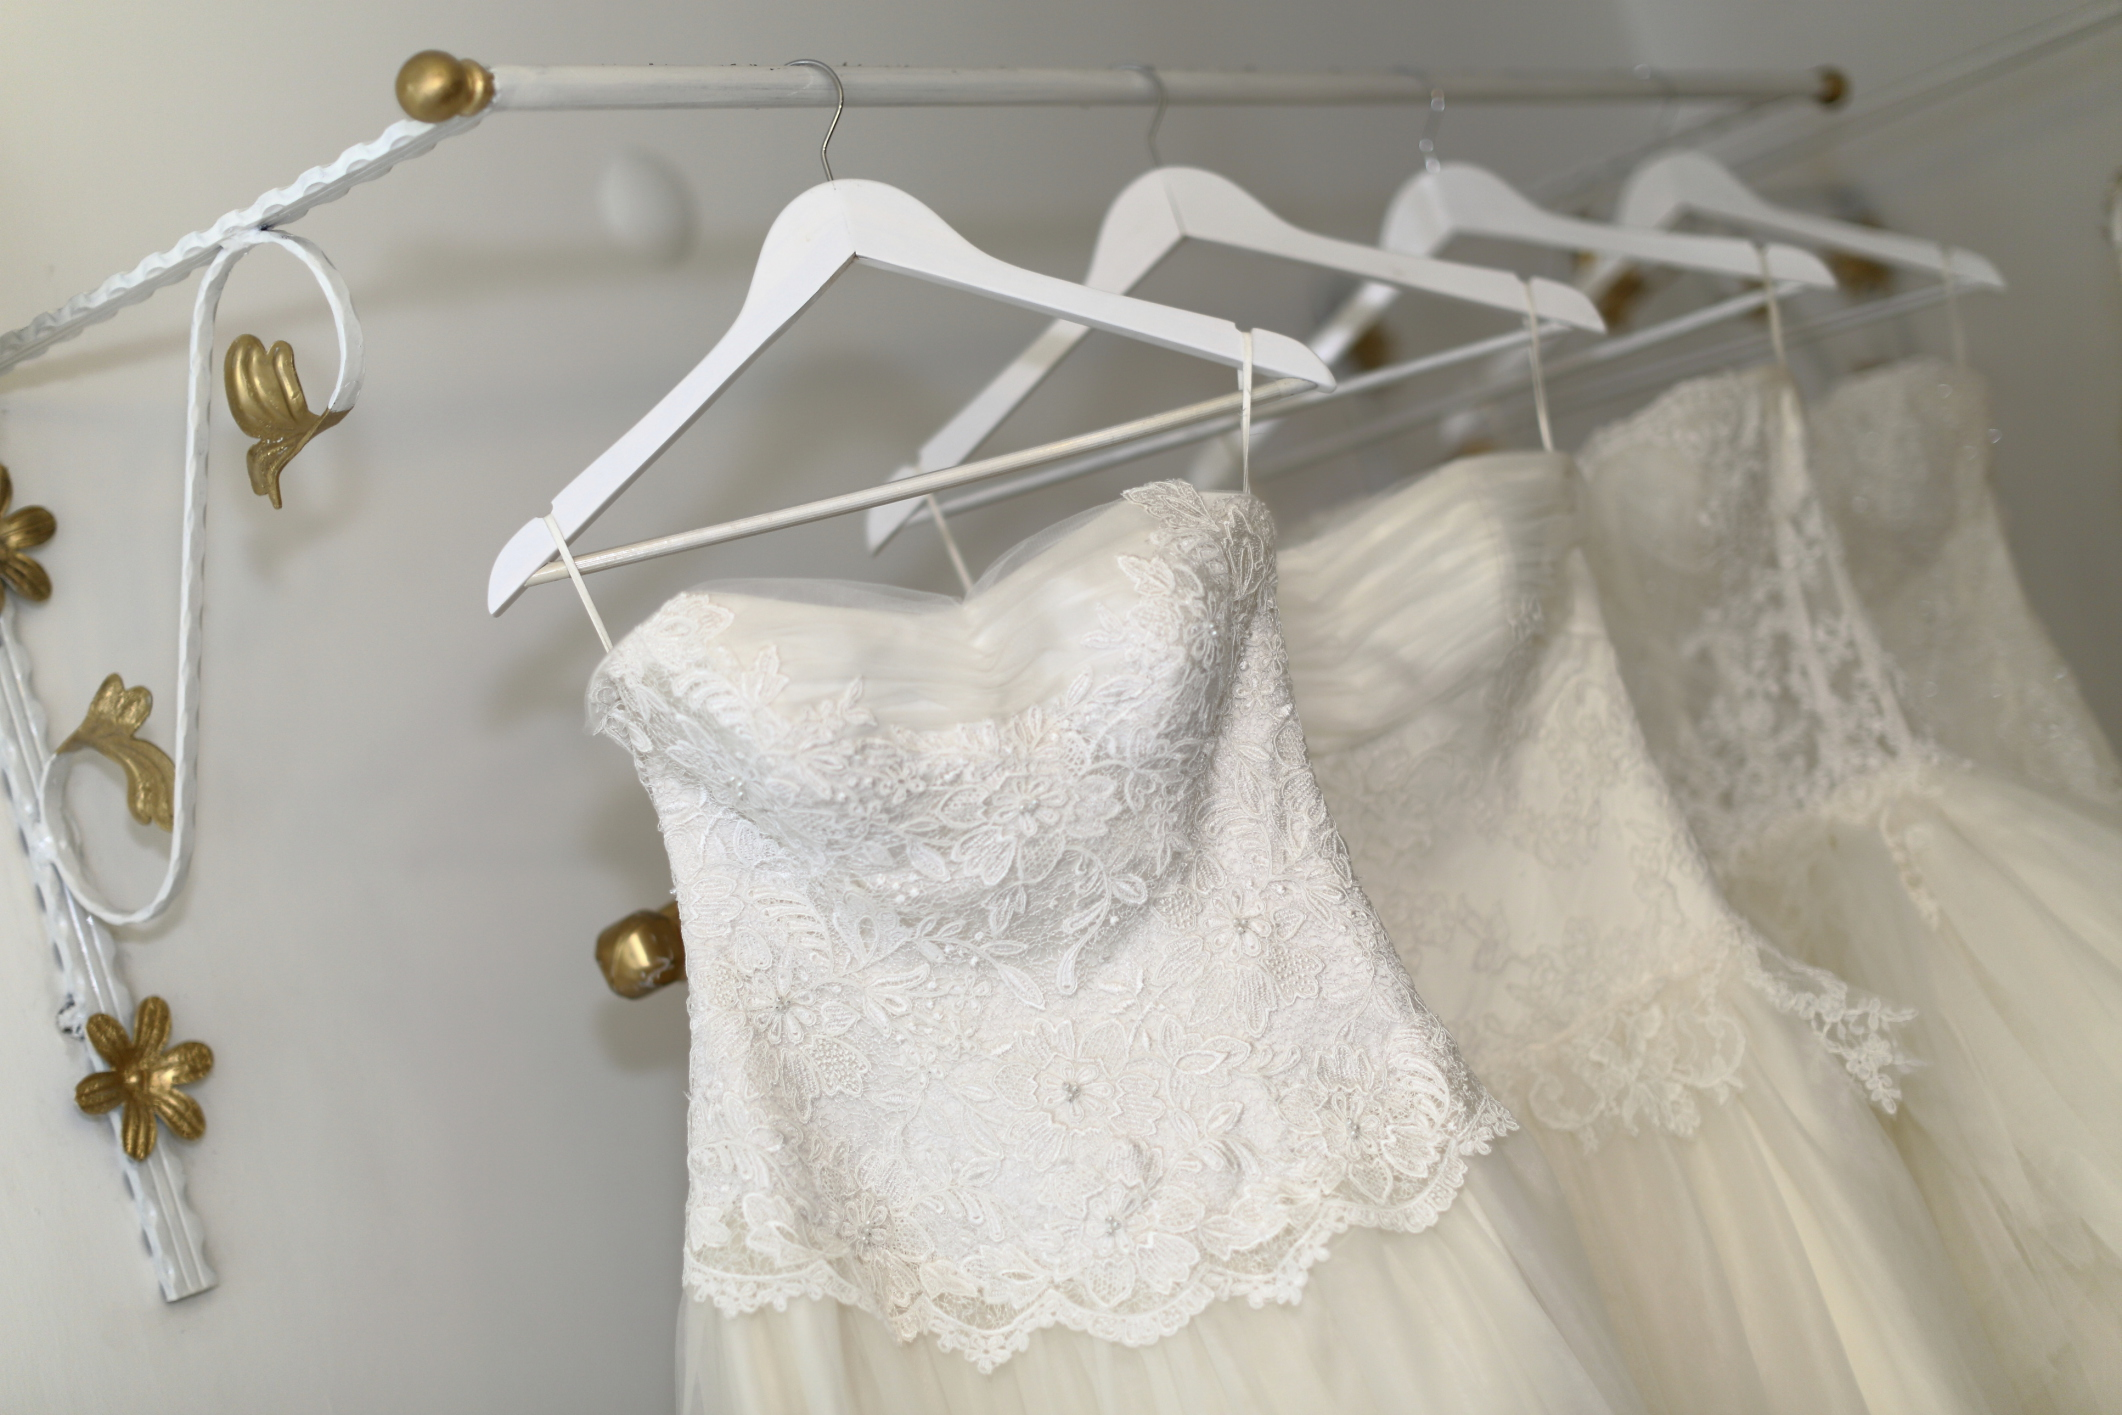 Sell Wedding Dress | Selling Your Wedding Dress Articles Easy Weddings